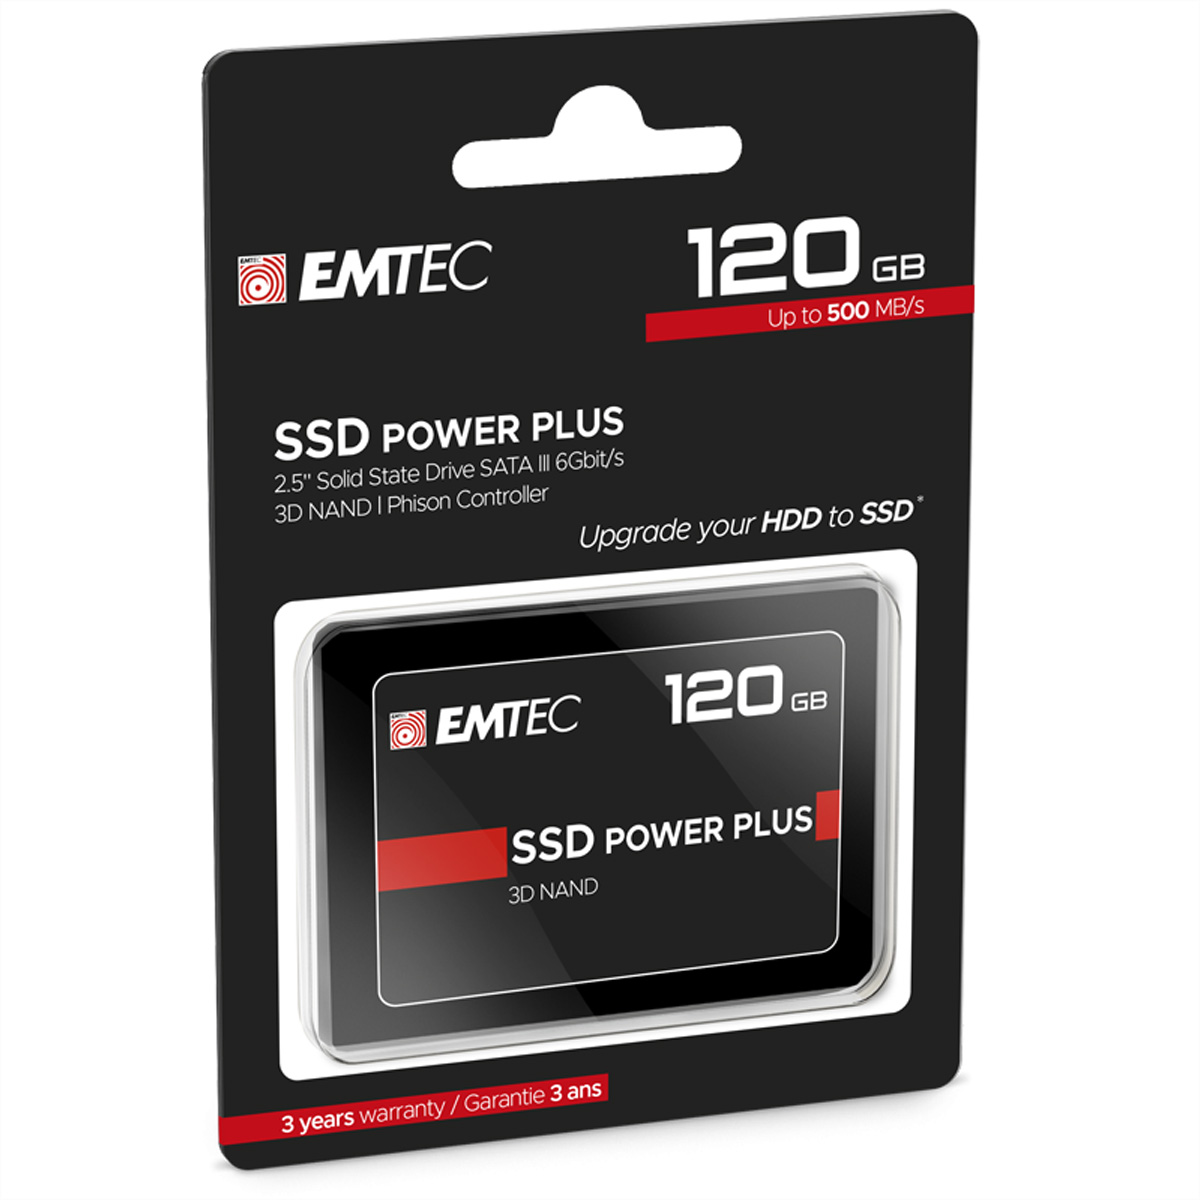 EMTEC SSD Intern X150 120GB, SSD Power Plus, 2.5 Zoll, SATA III 6GB/s